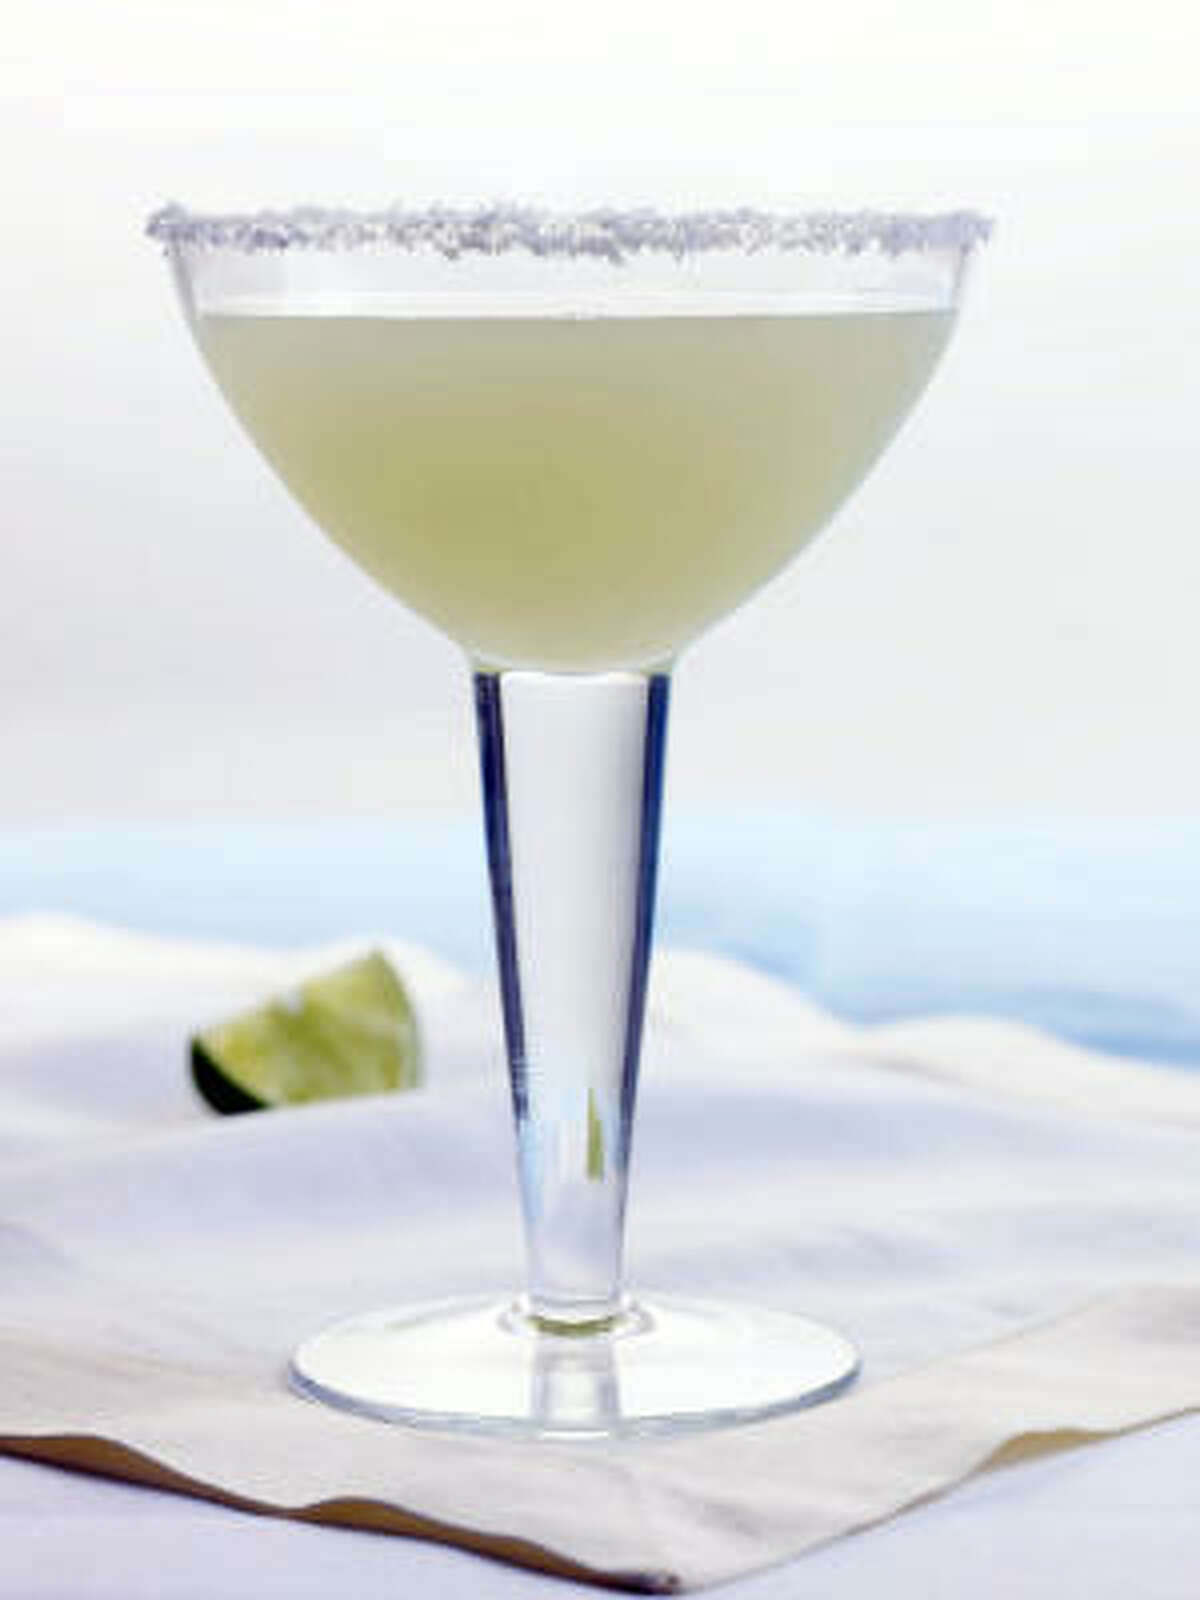 Celebrate National Tequila Day on Friday with some of the best out there.